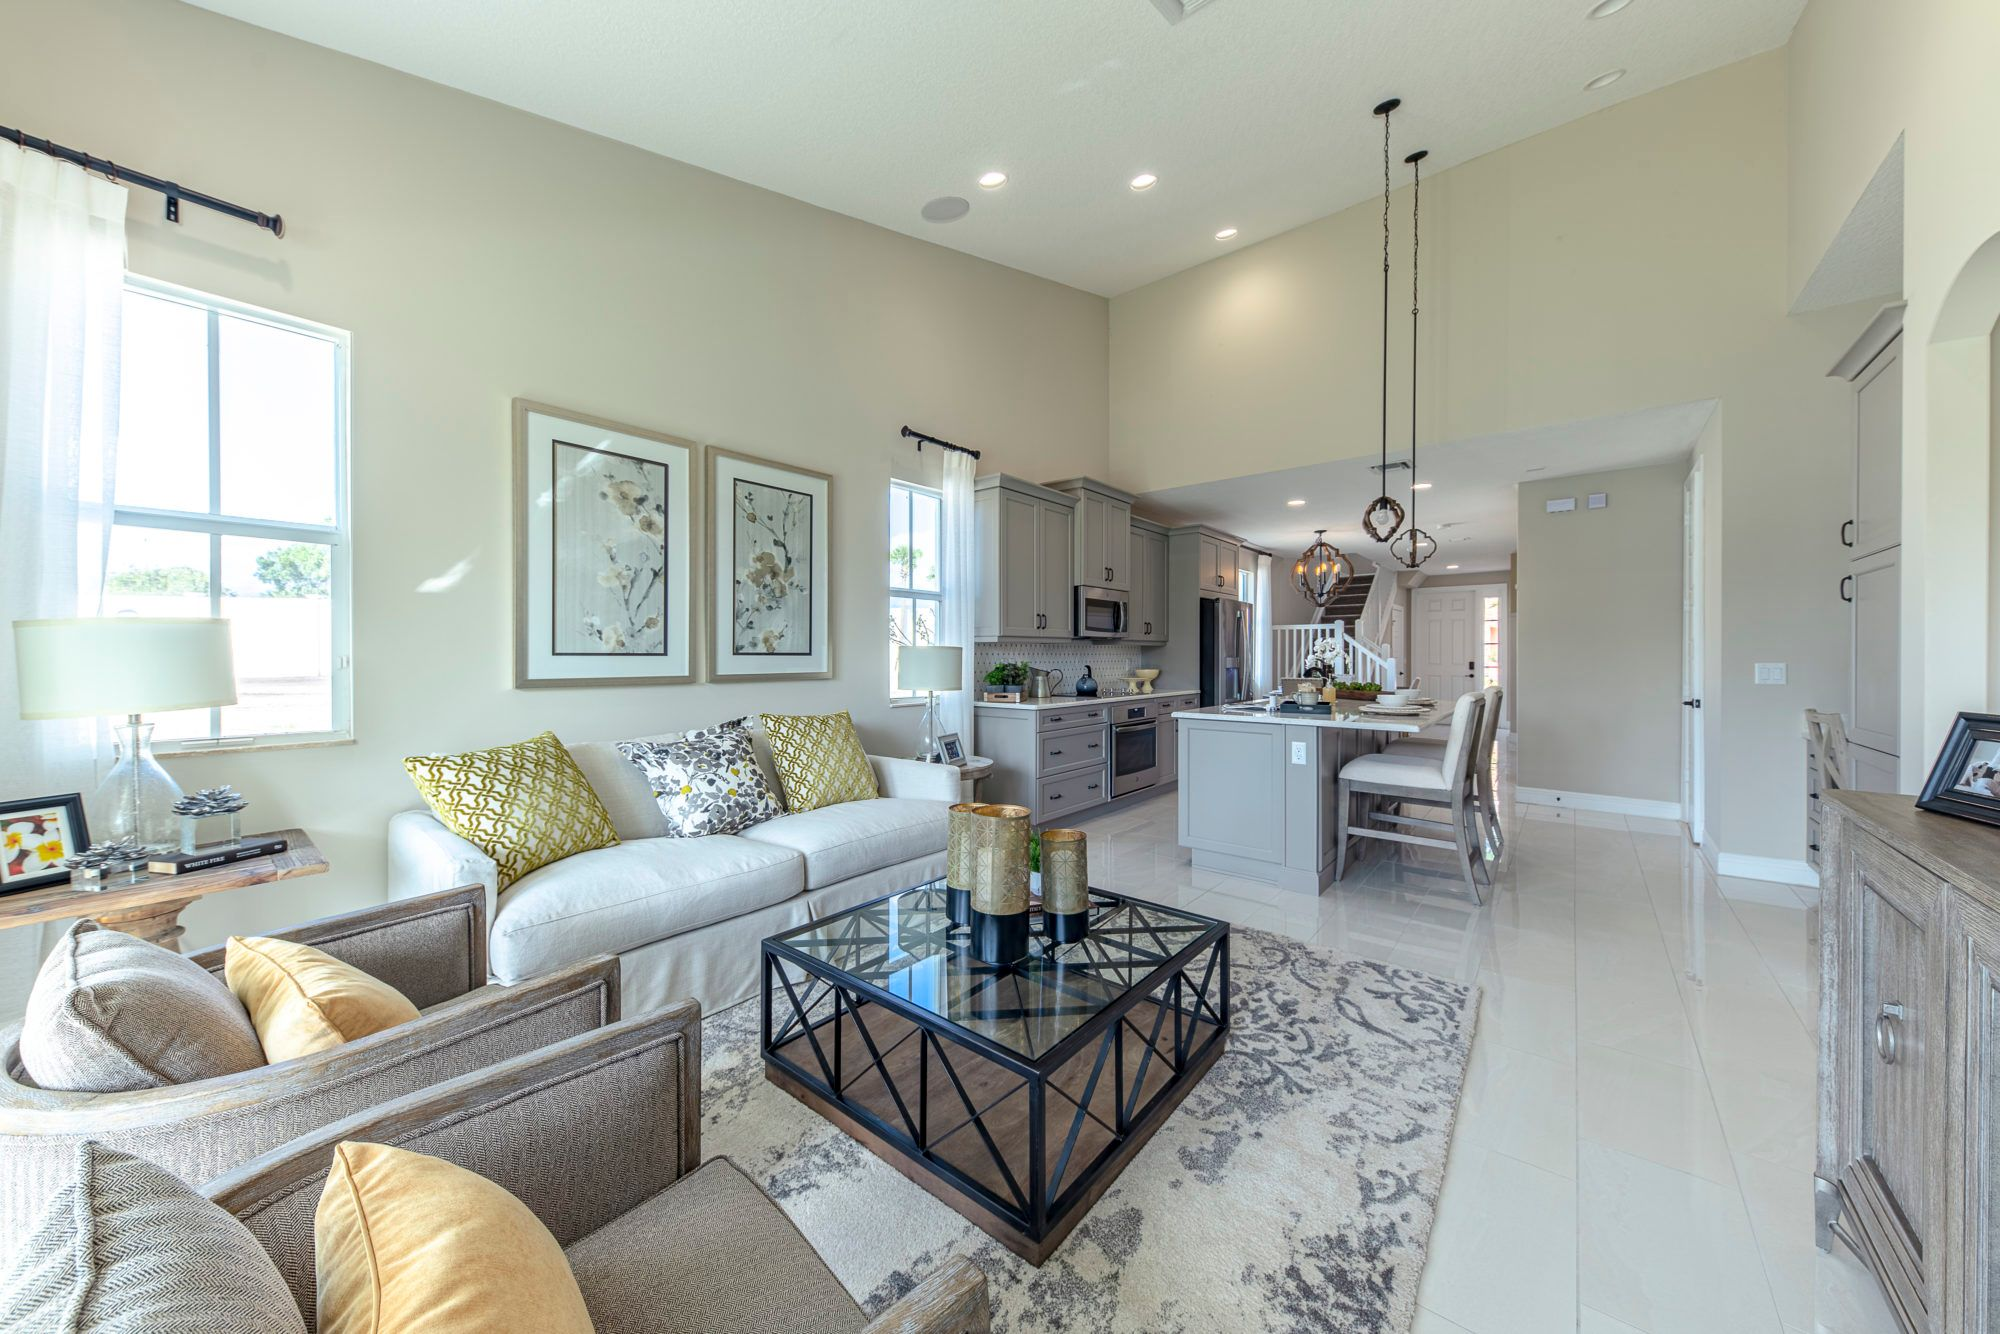 Living Area featured in the Sancia By 5 Star Development in Palm Beach County, FL